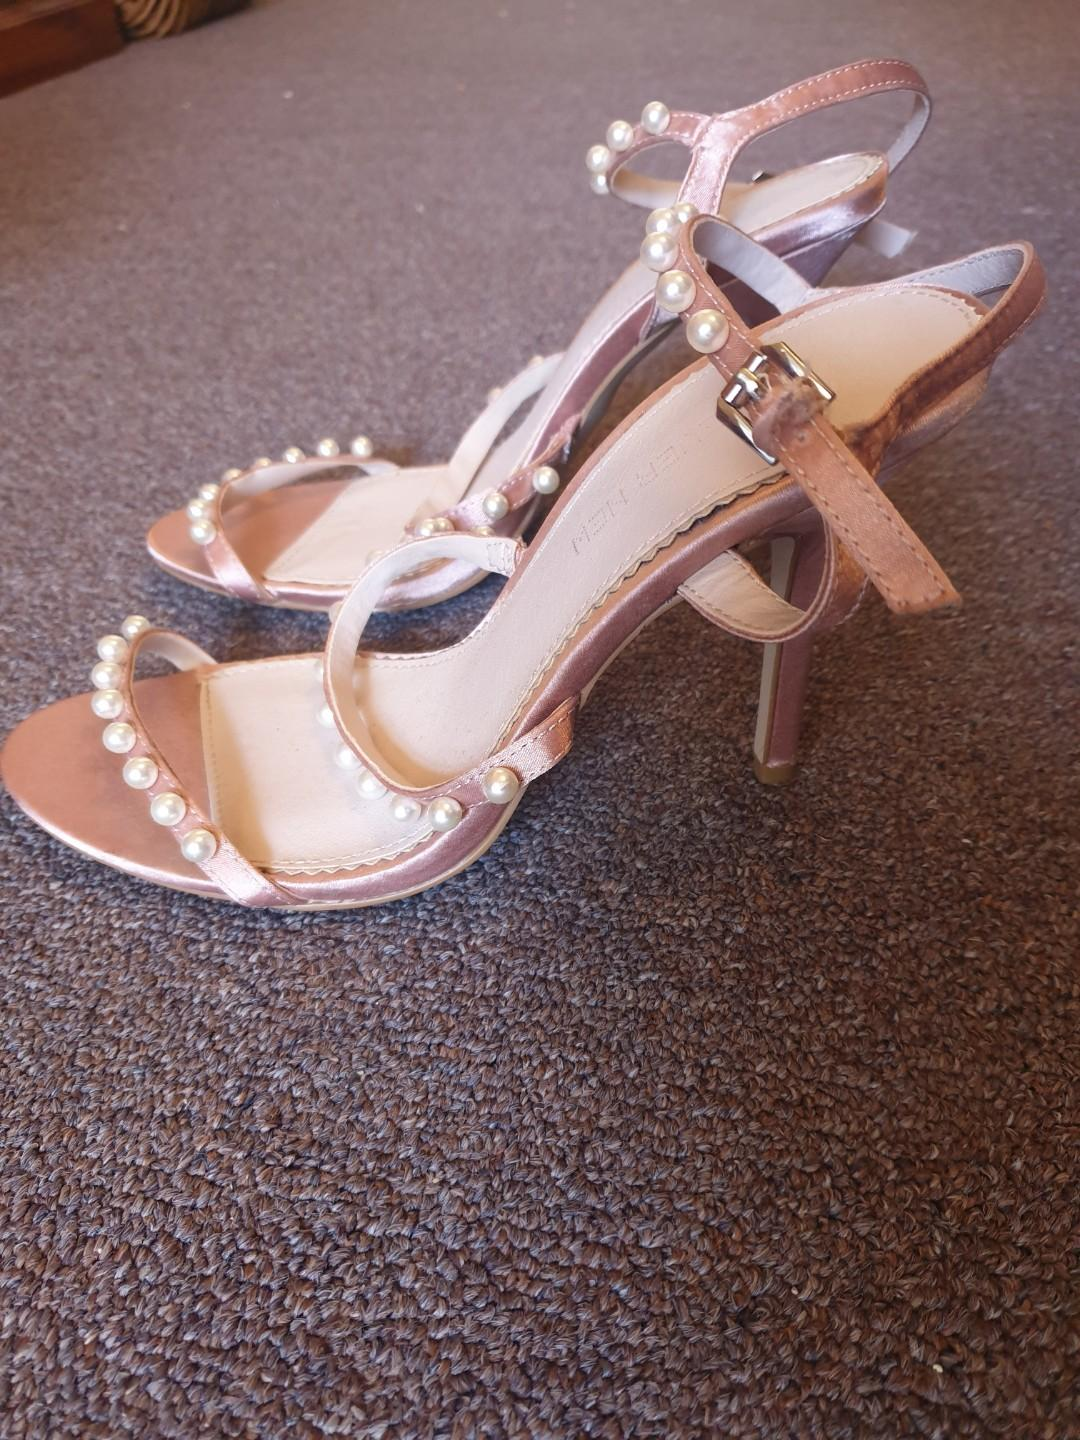 Forever New Champagne Satin Pearl Heels Size 38 7 Good Condition